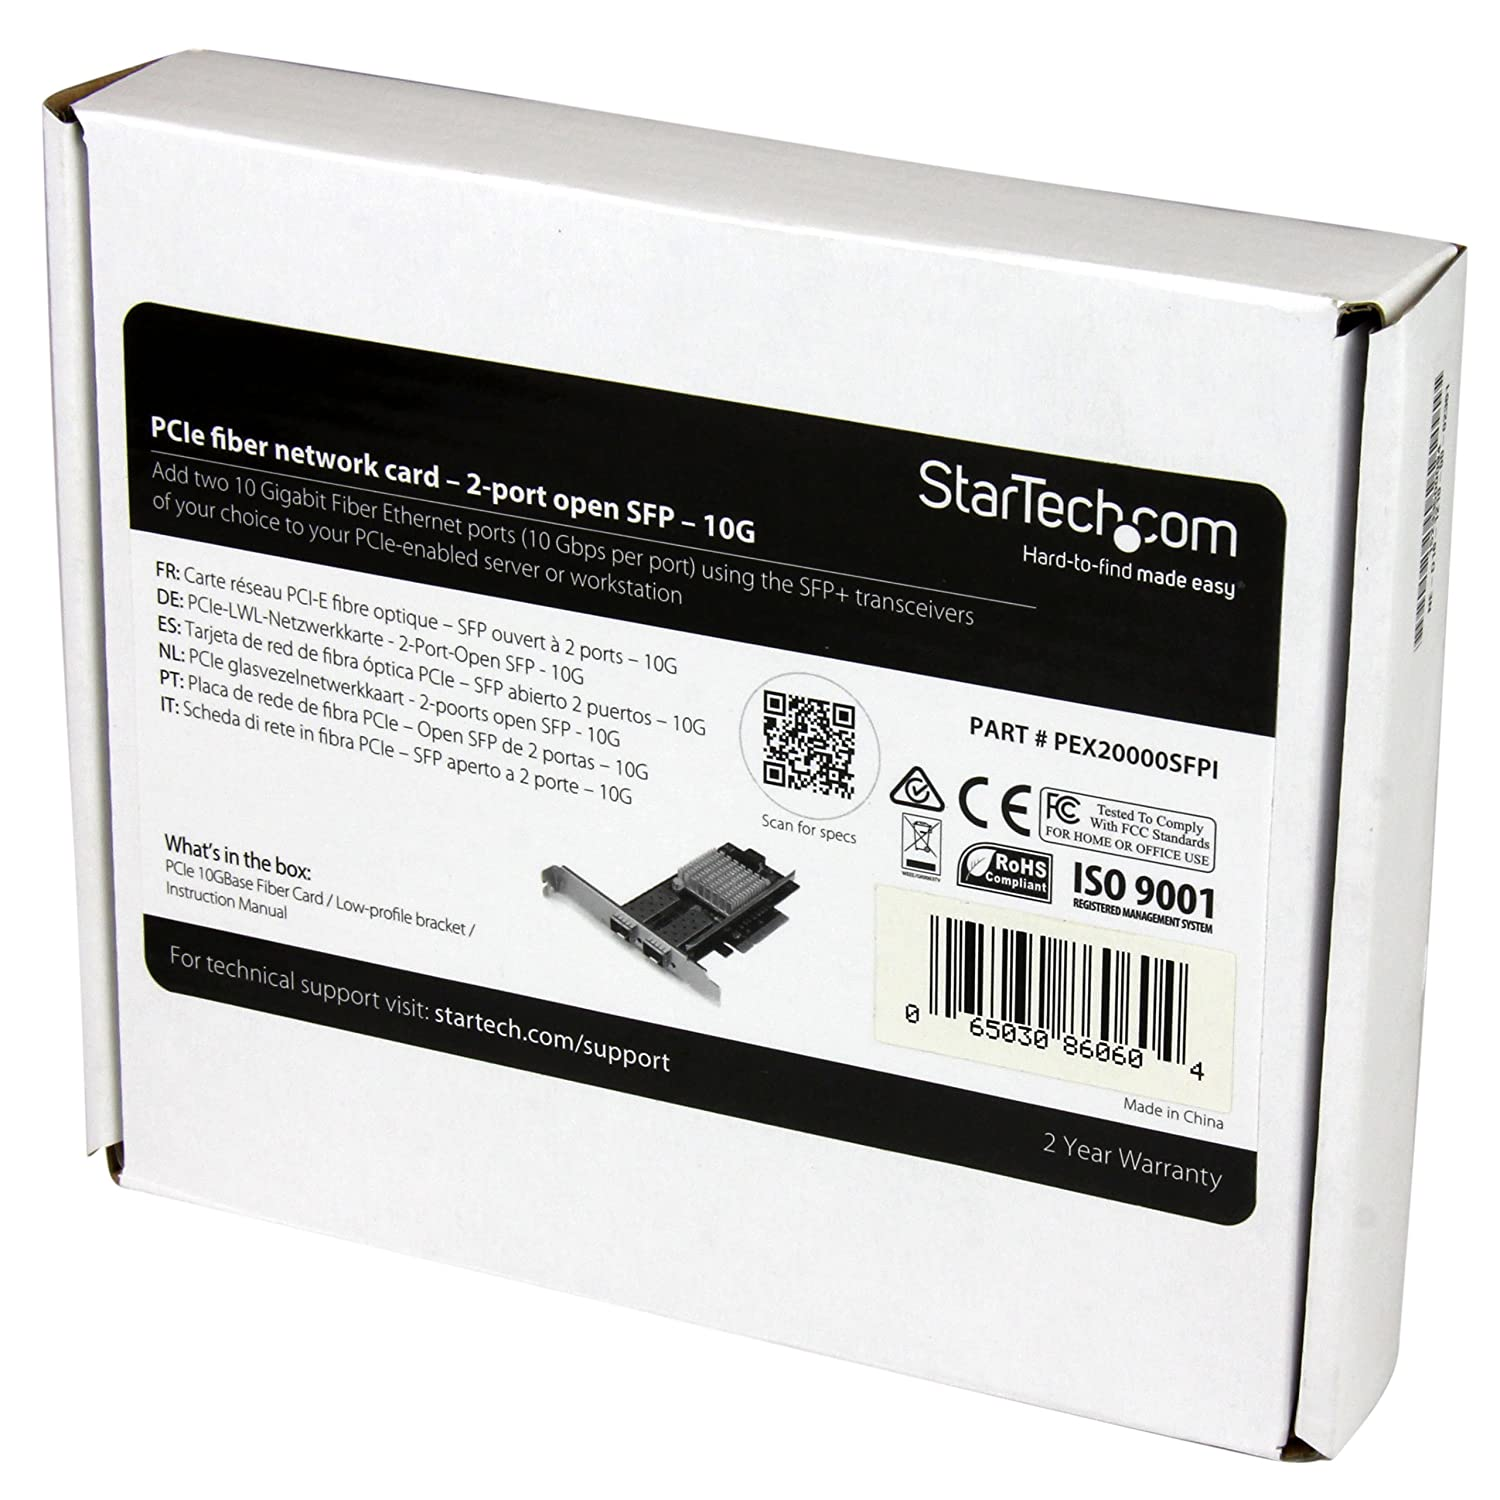 StarTech.com 10G Network Card - 2X 10G Open SFP+ Multimode LC Fiber Connector - Intel 82599 Chip - Gigabit Ethernet Card (PEX20000SFPI)